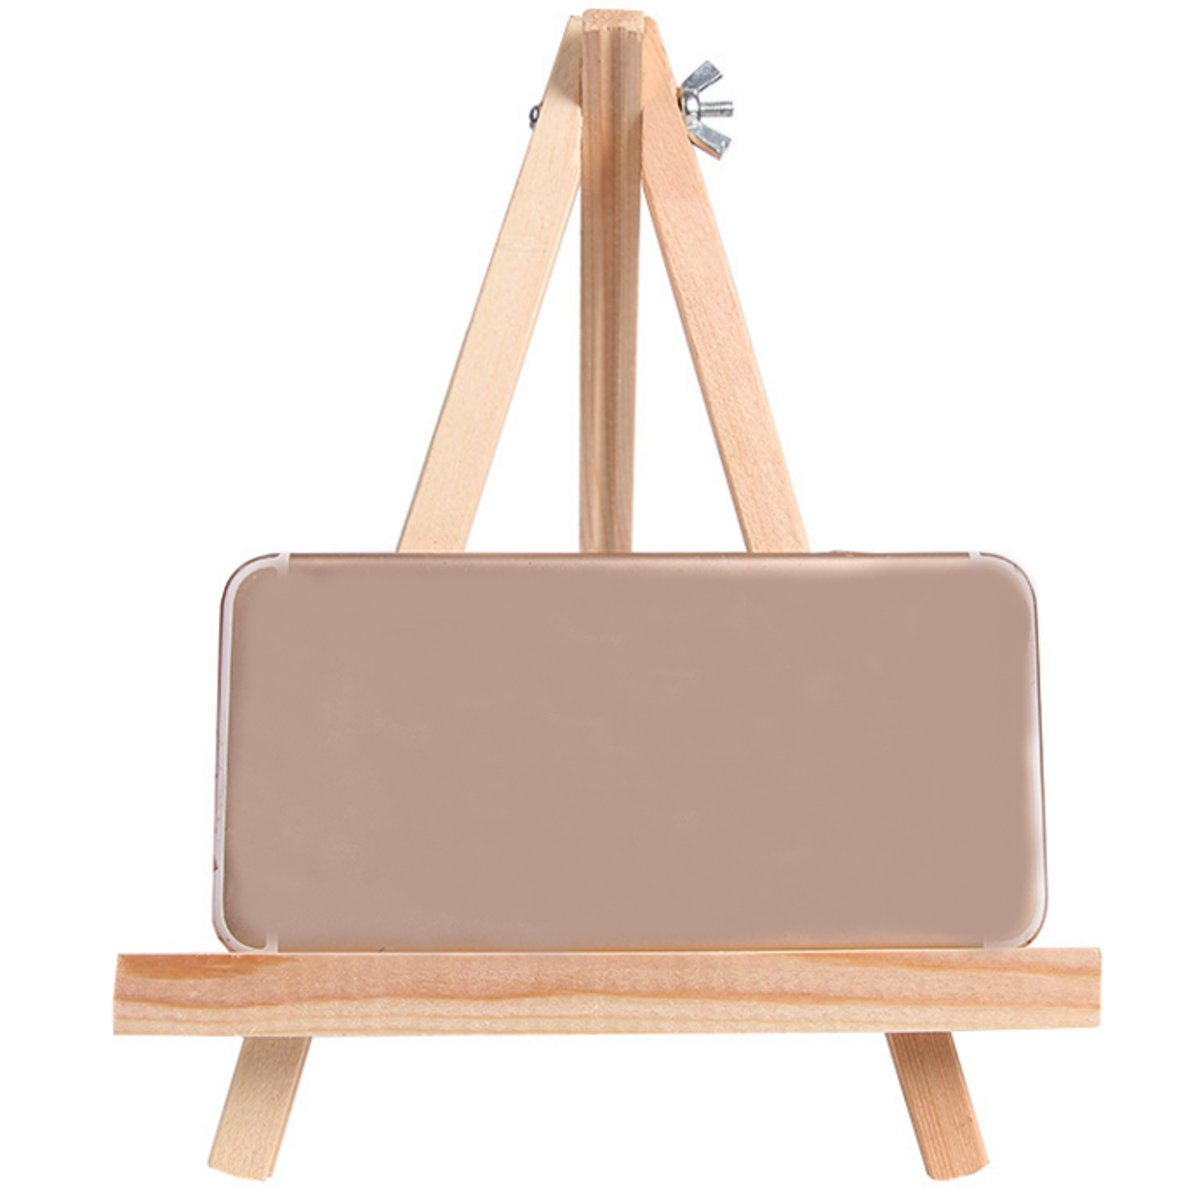 Wooden Small Timber Easels School Photo Art Painting Display Rack Stand Holder Wedding Table Card Holder Party Decoration 10pcs